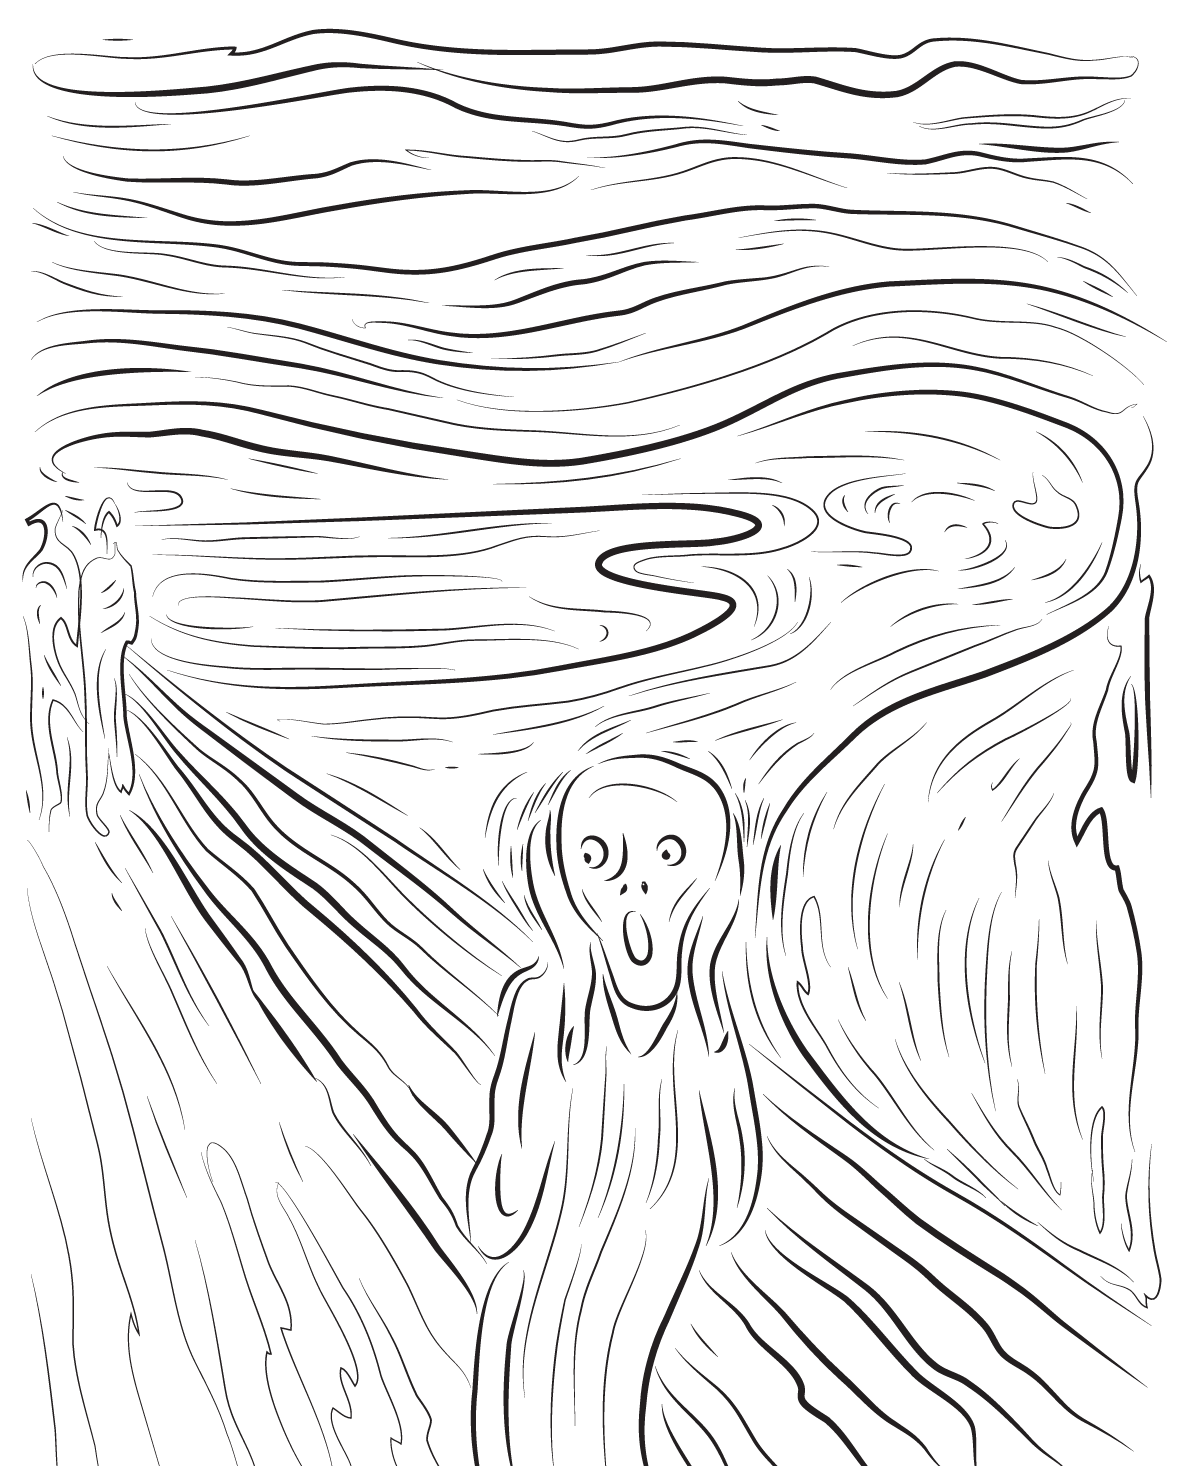 the-scream-by-edvard-munch-coloring-page 02.png